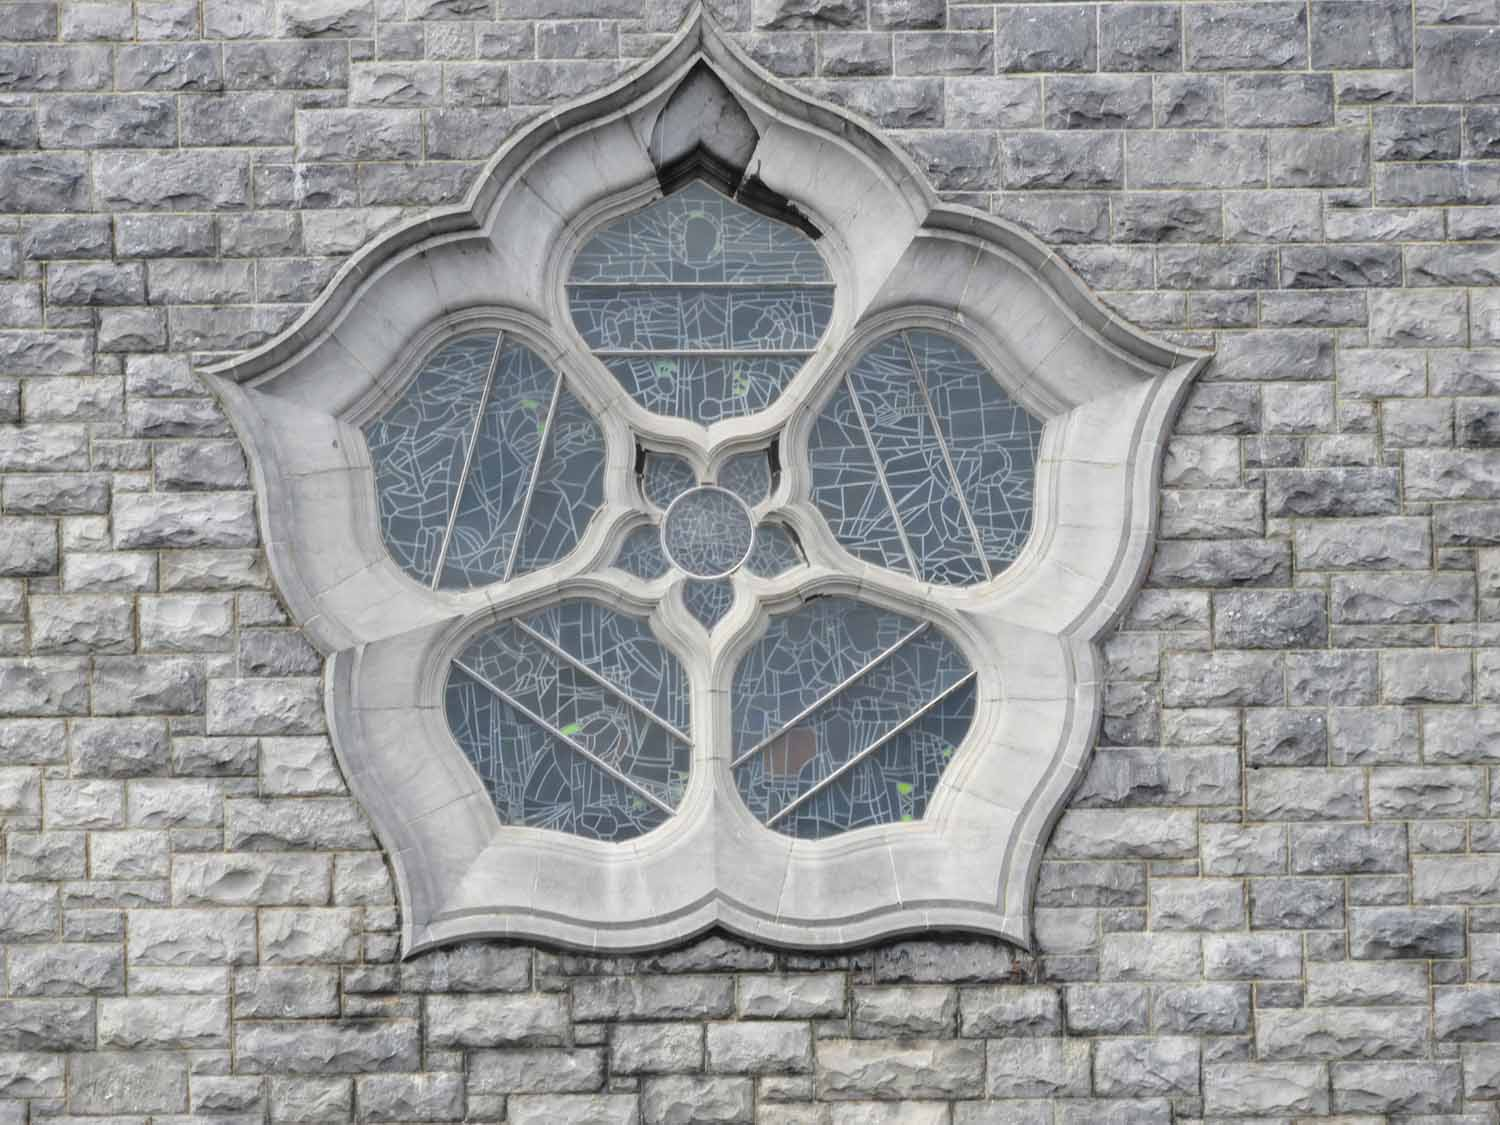 ireland-galway-cathederal-rose-window-stained-glass.jpg